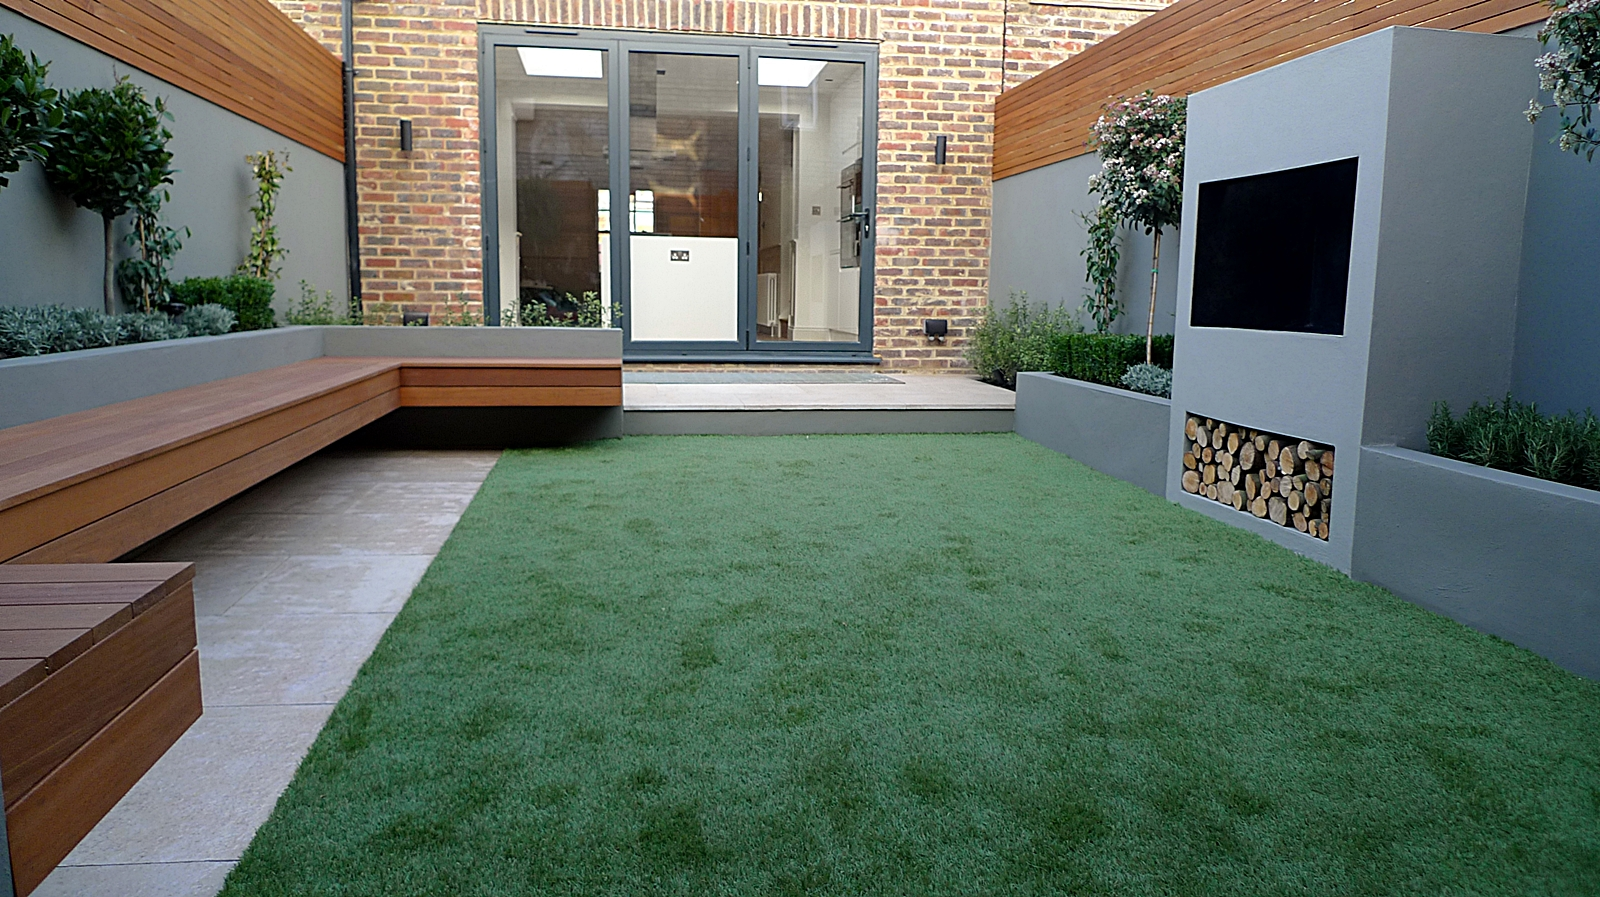 Modern & Contemporary Garden Design & Landscaping Clapham ... on Turf Backyard Ideas id=93653